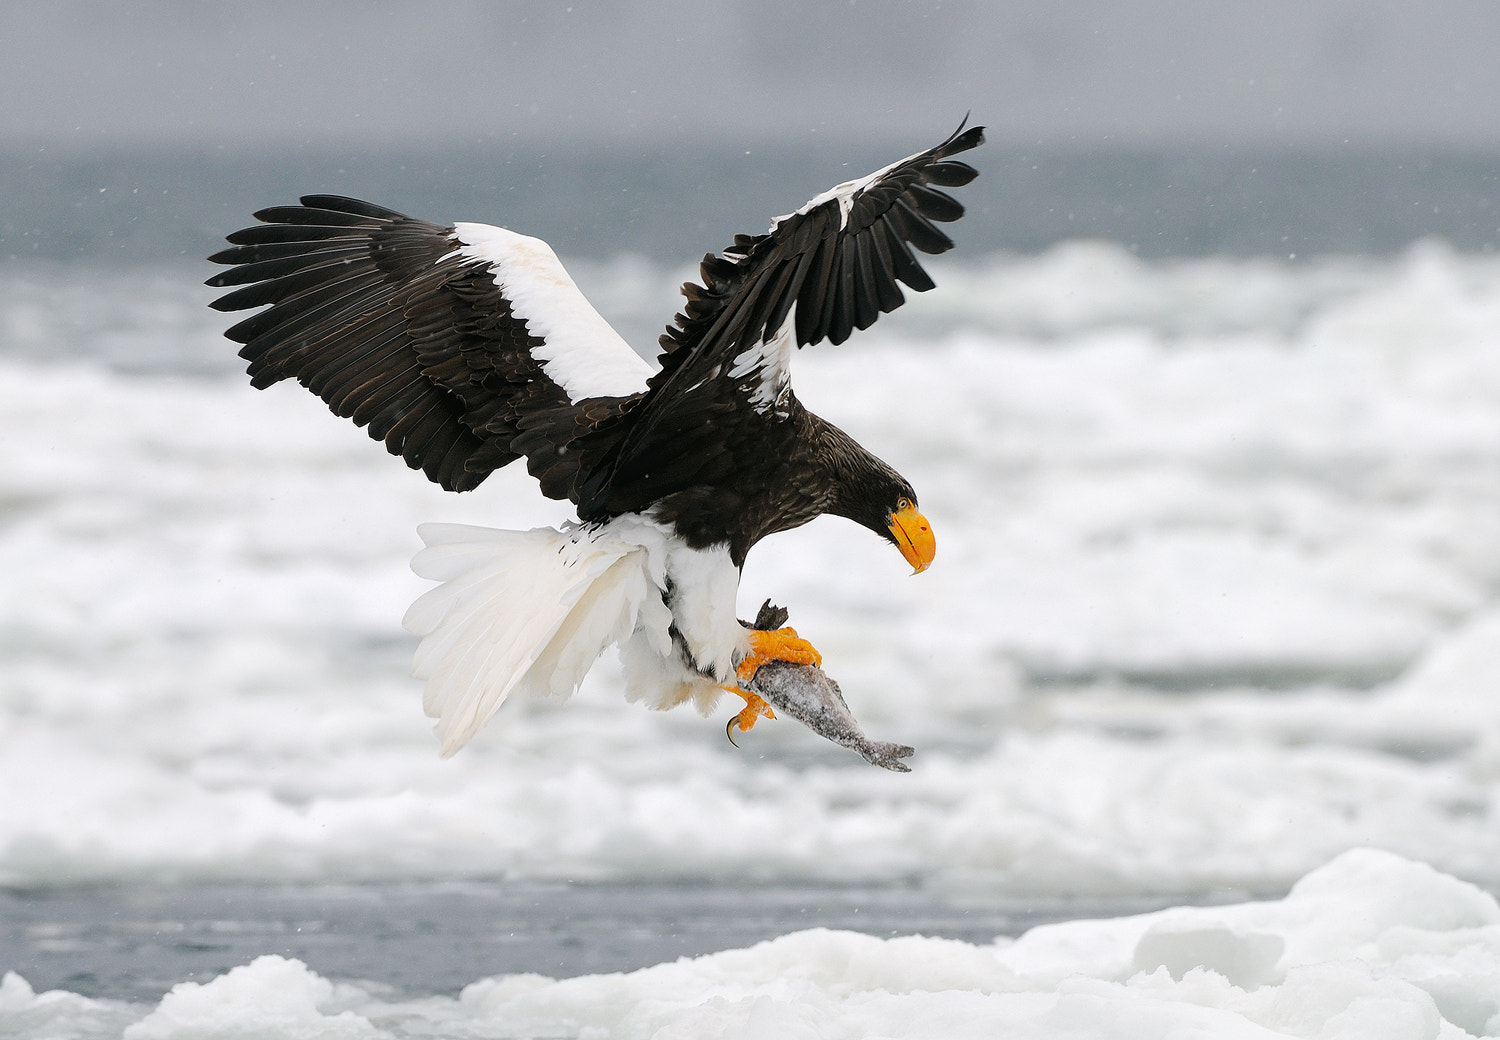 Photograph As Cold As Ice by Harry  Eggens on 500px